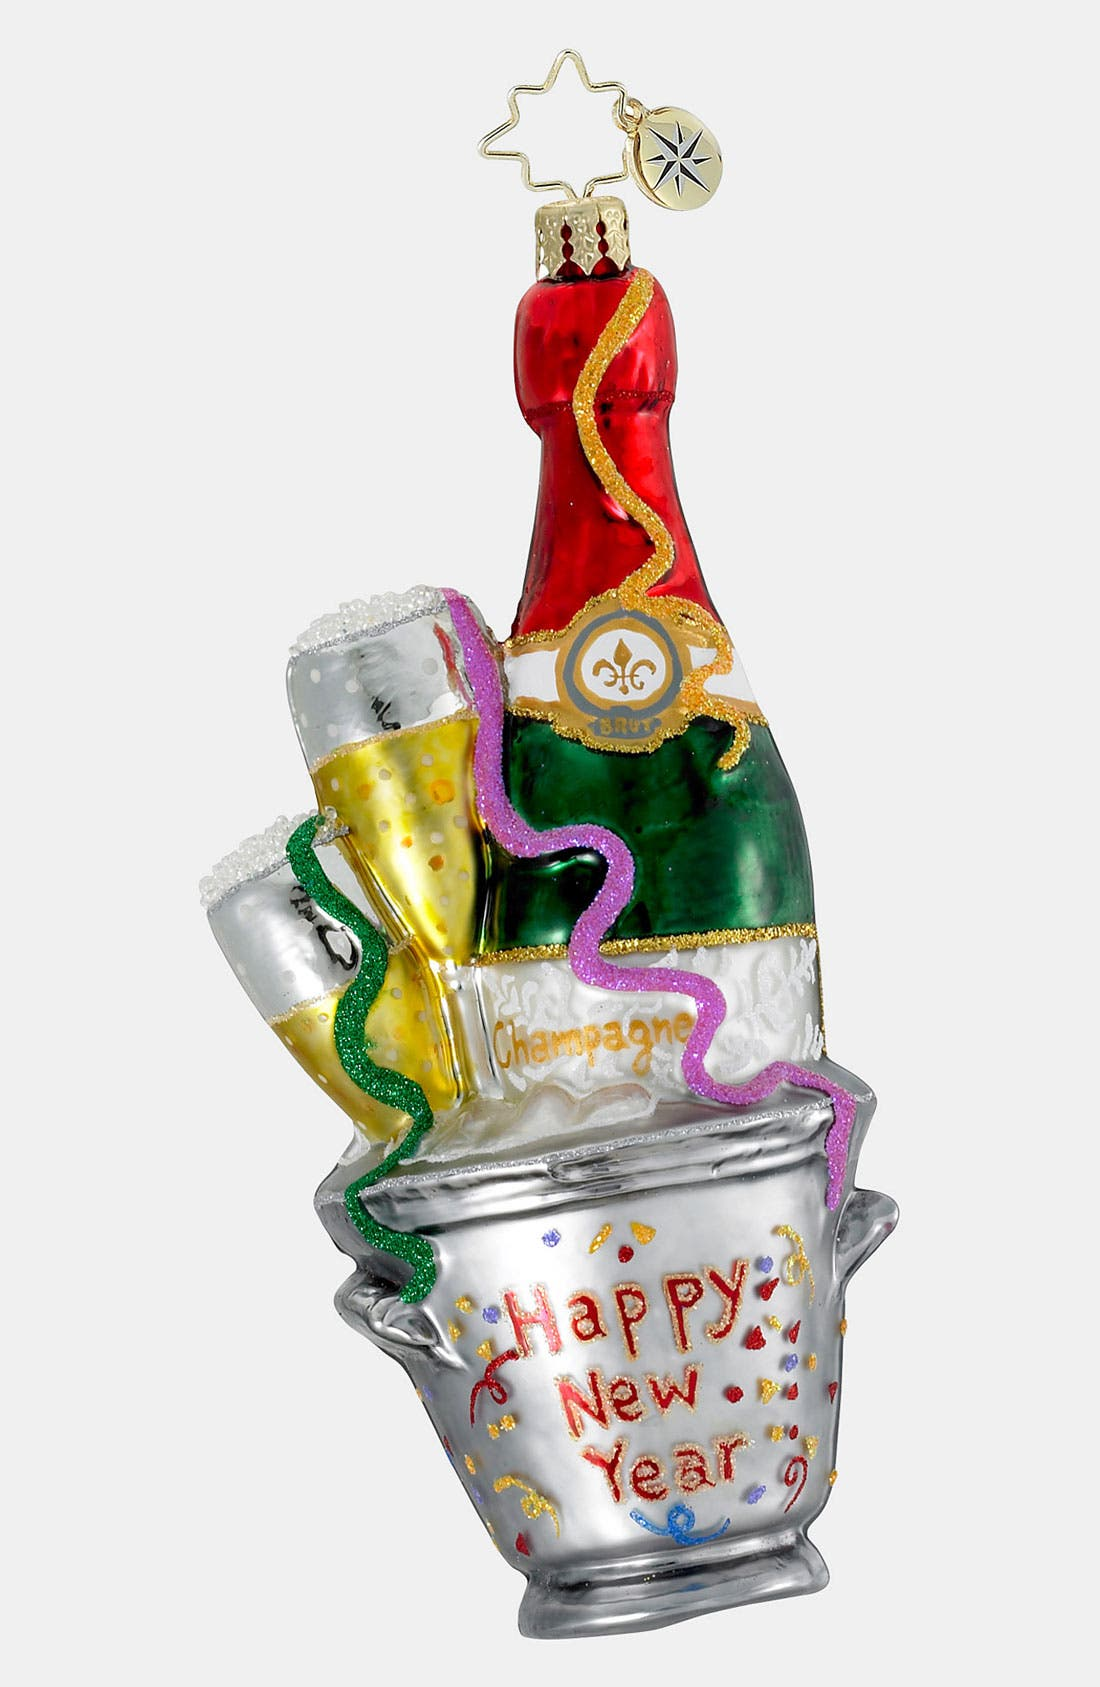 Alternate Image 1 Selected - Christopher Radko 'Champagne Wishes' Ornament